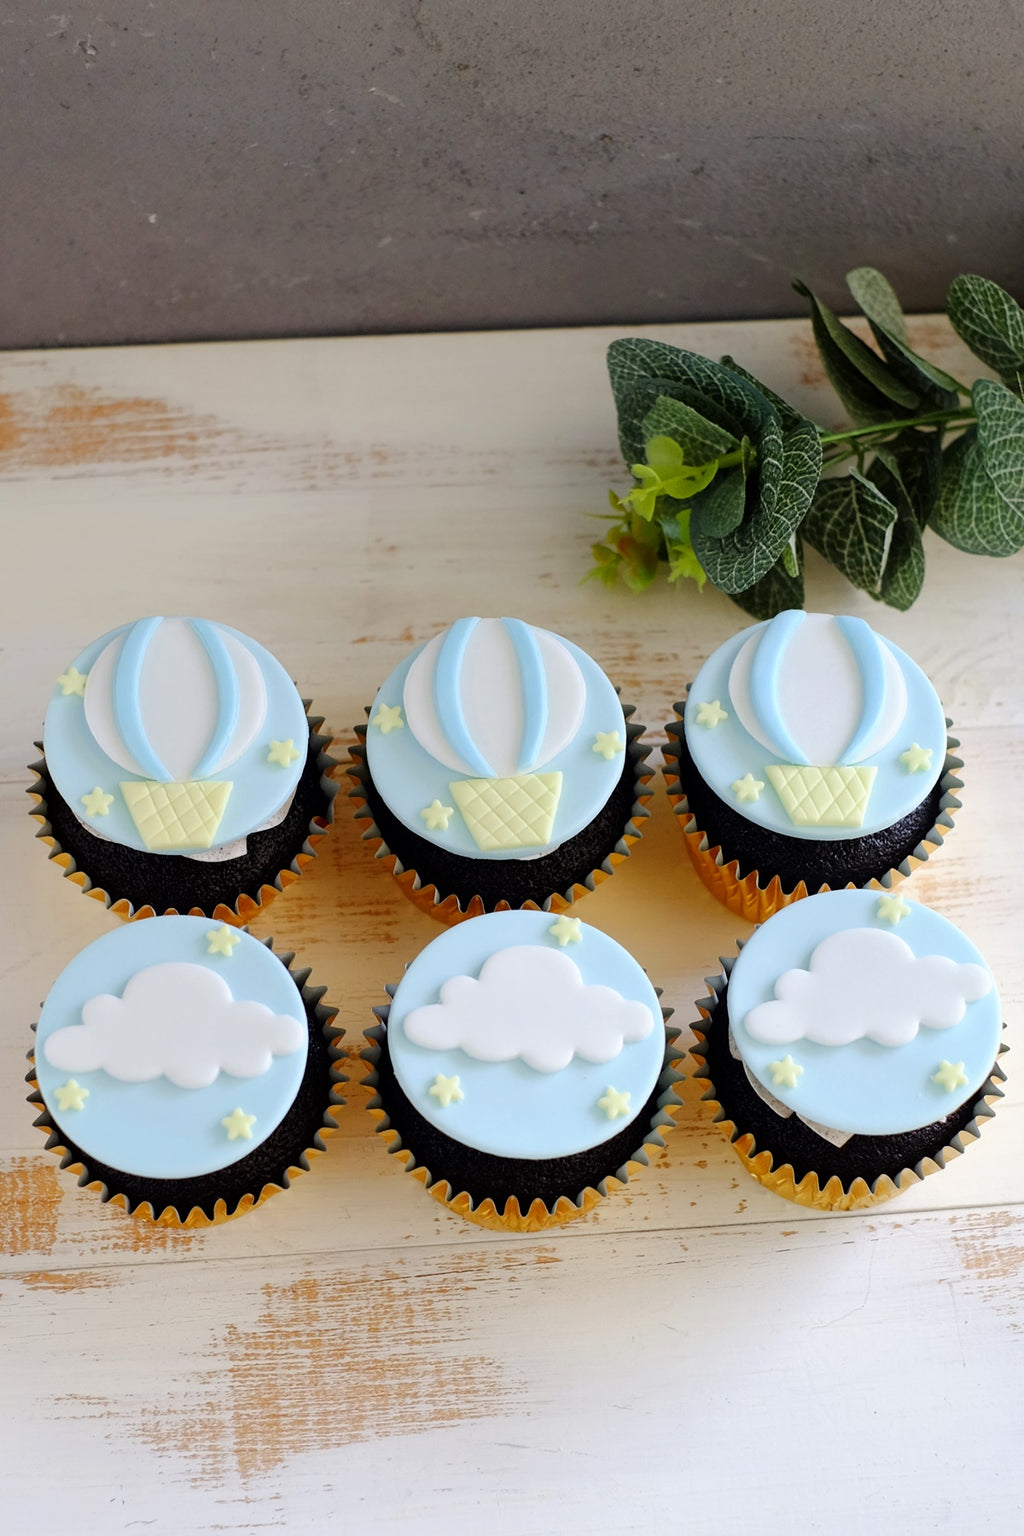 Hot Air Balloon Fondant Cupcakes (From $6.75/Pc)